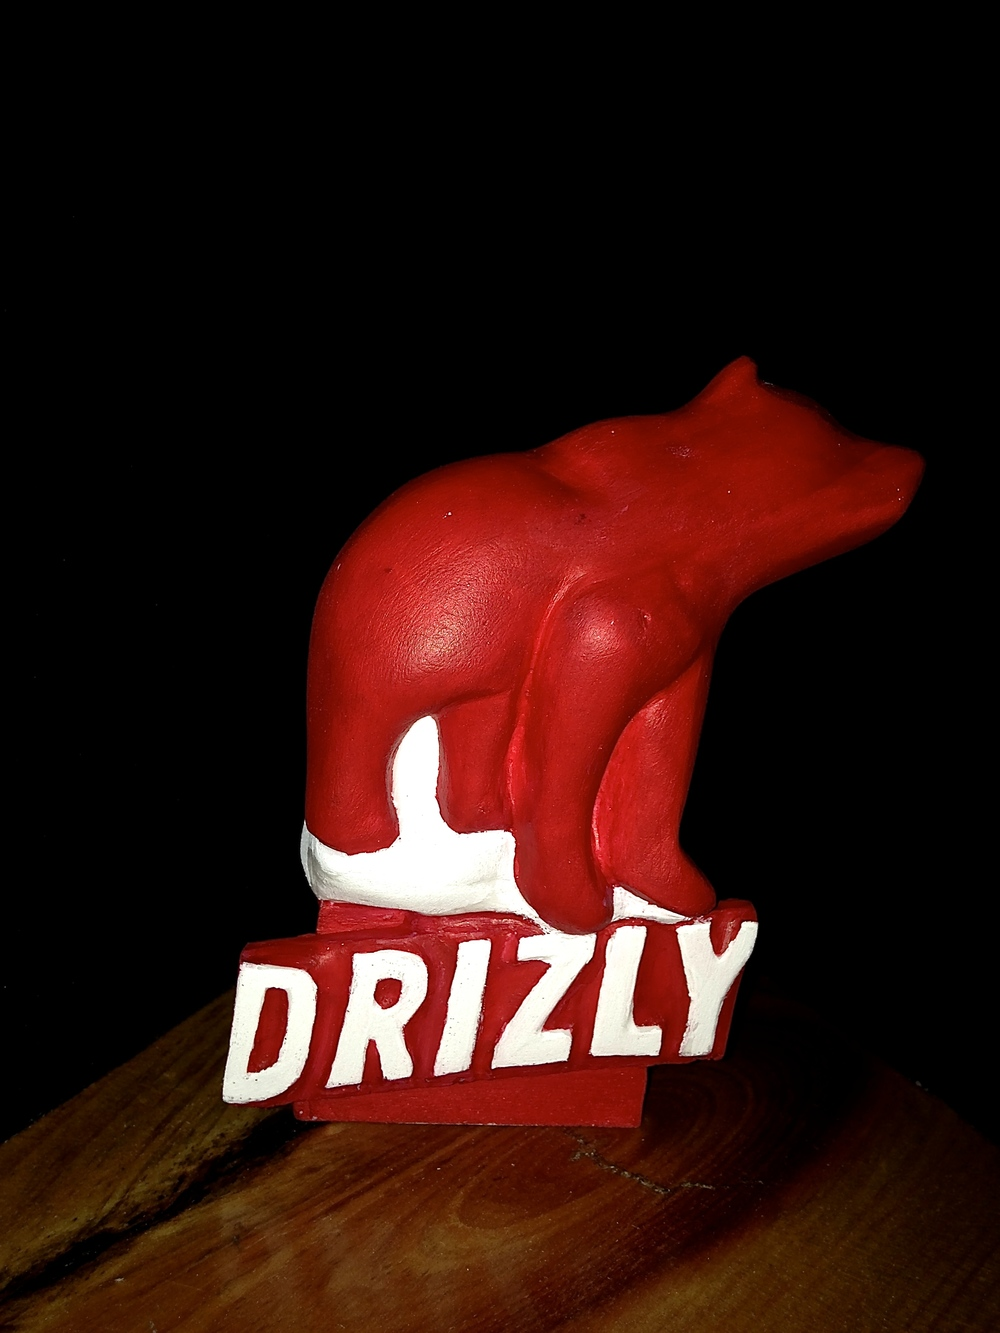 Drizly Tap 1.5.jpg